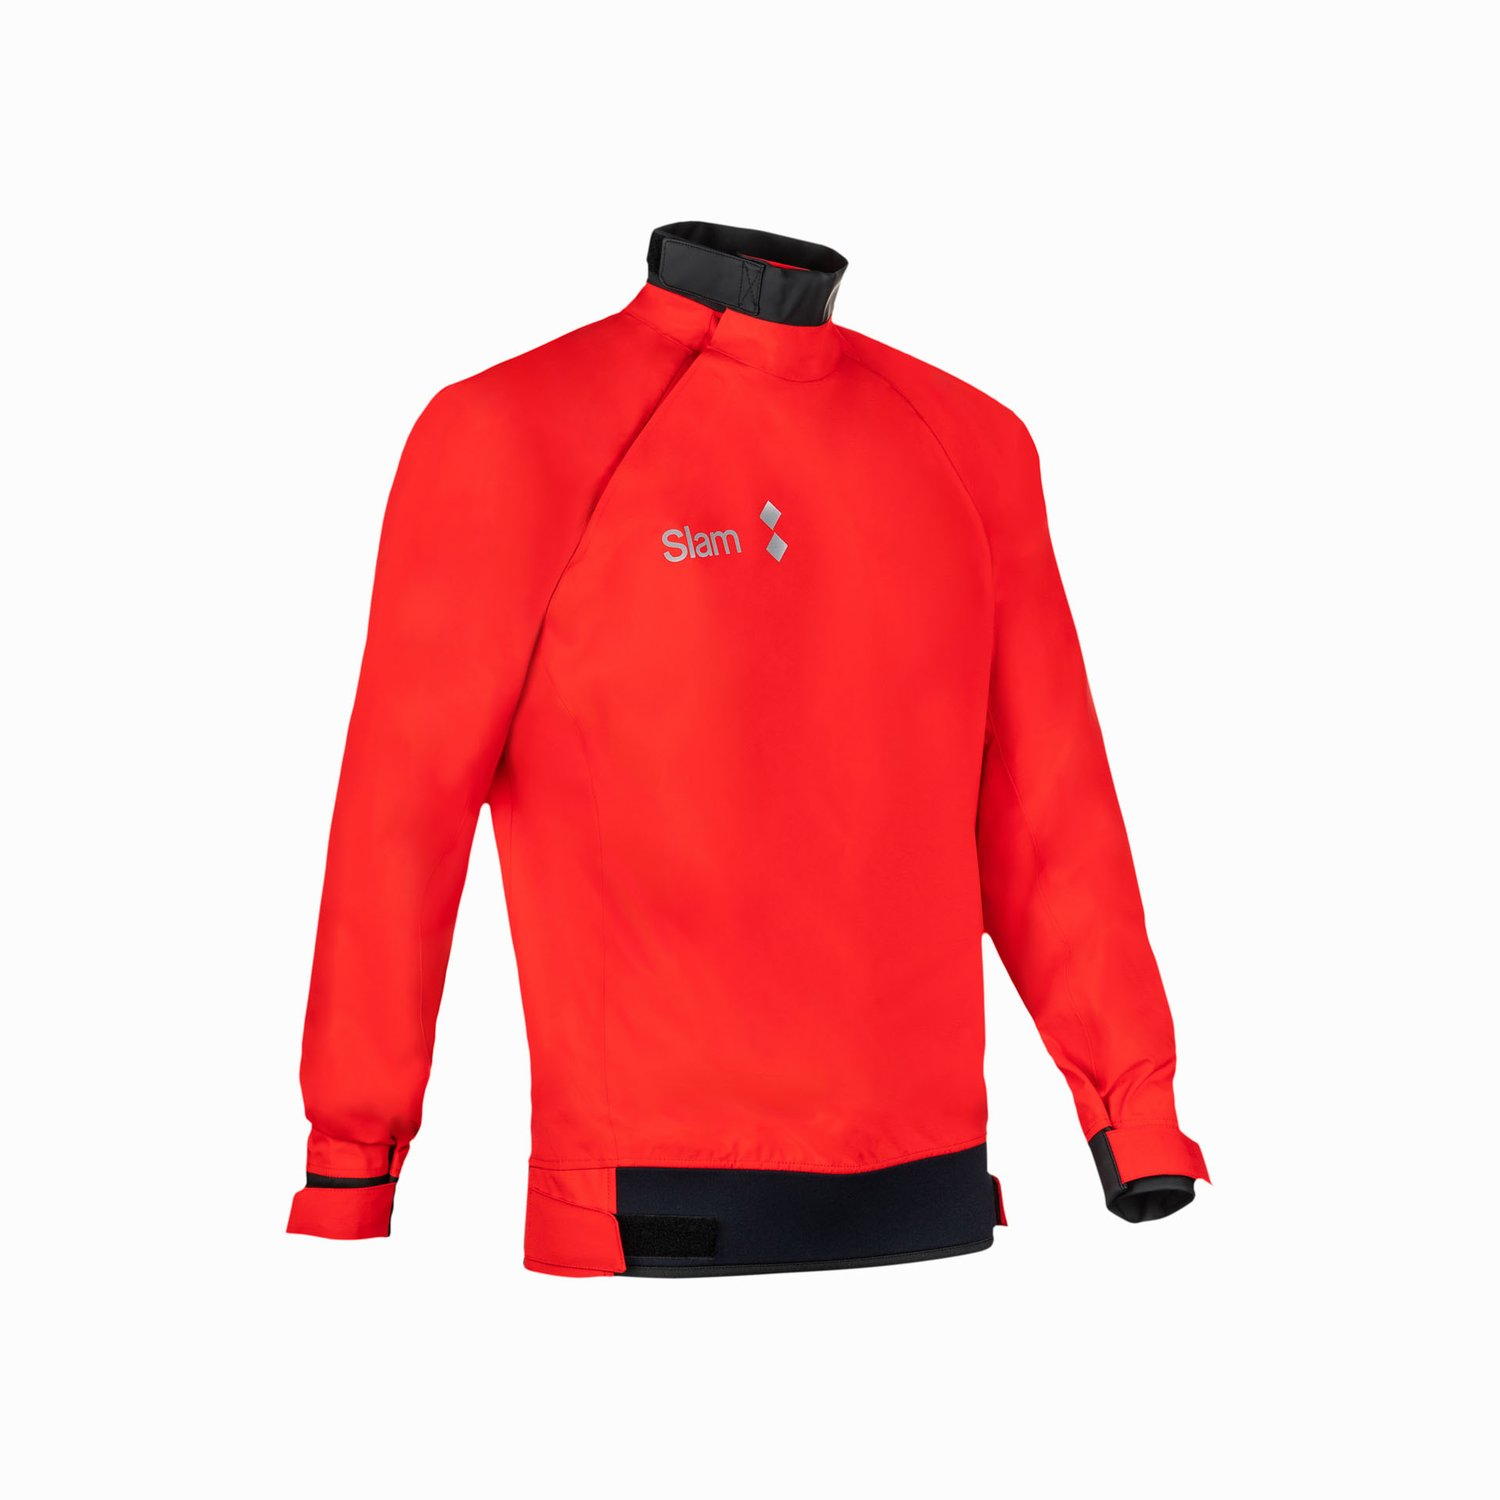 WIN-D 1 SAILING SPRAY TOP - Rojo Slam